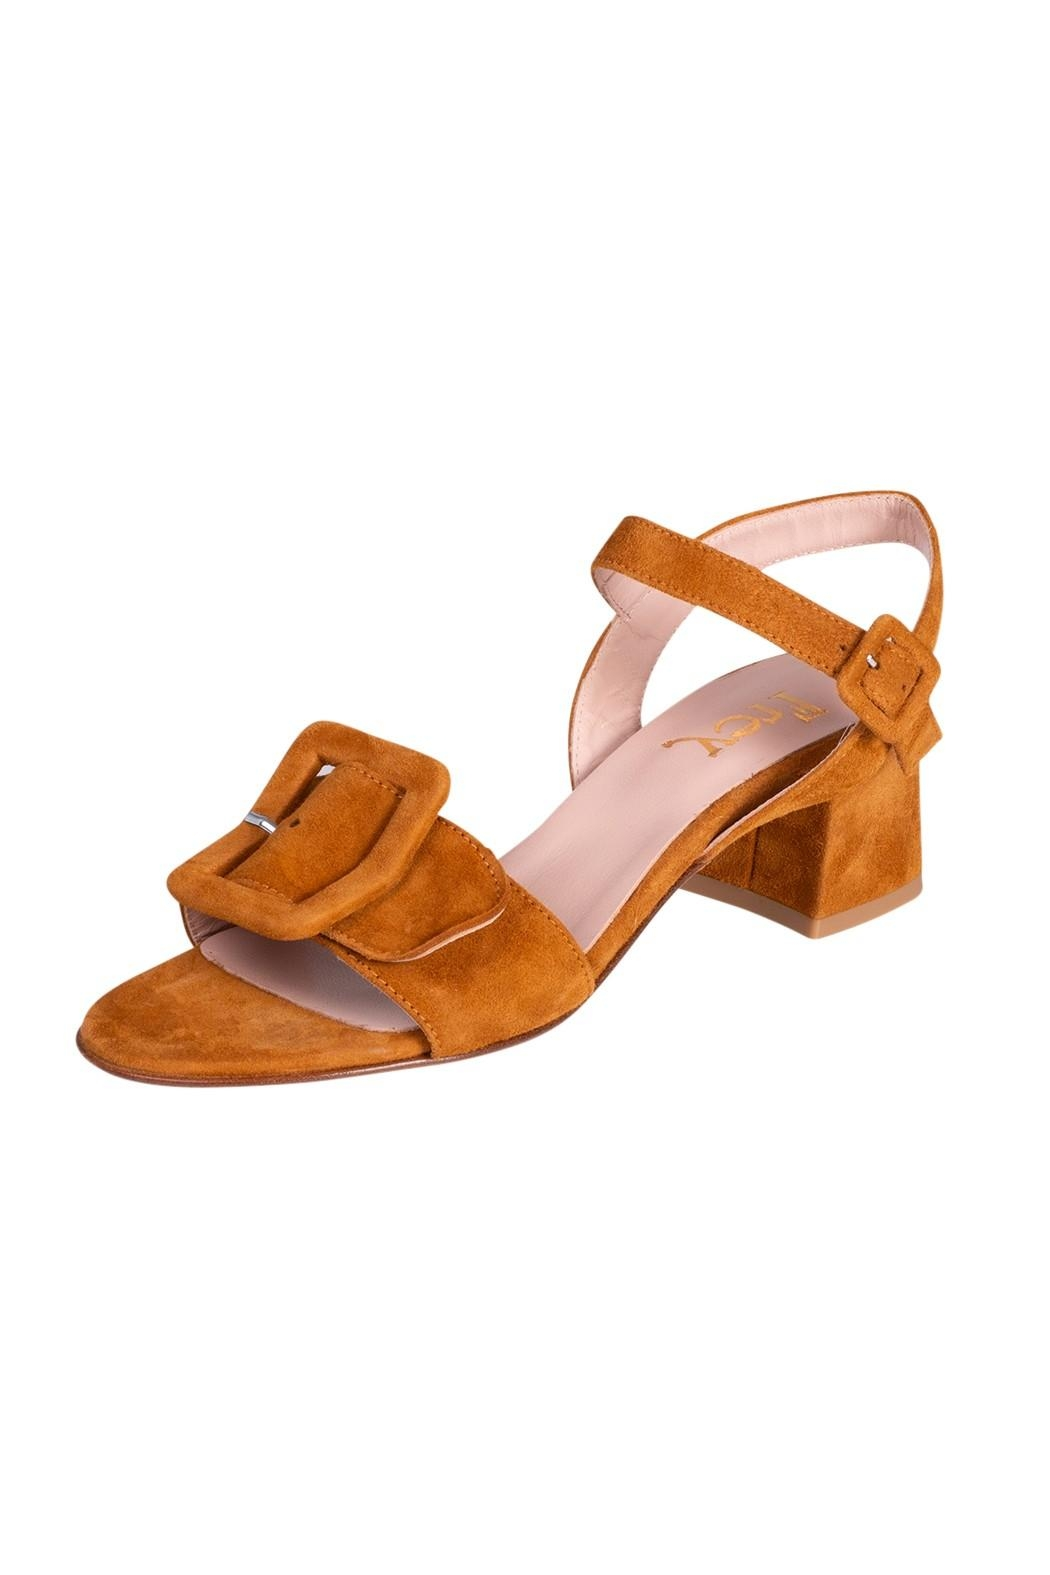 Pascucci Tan Suede Sandals - Front Full Image